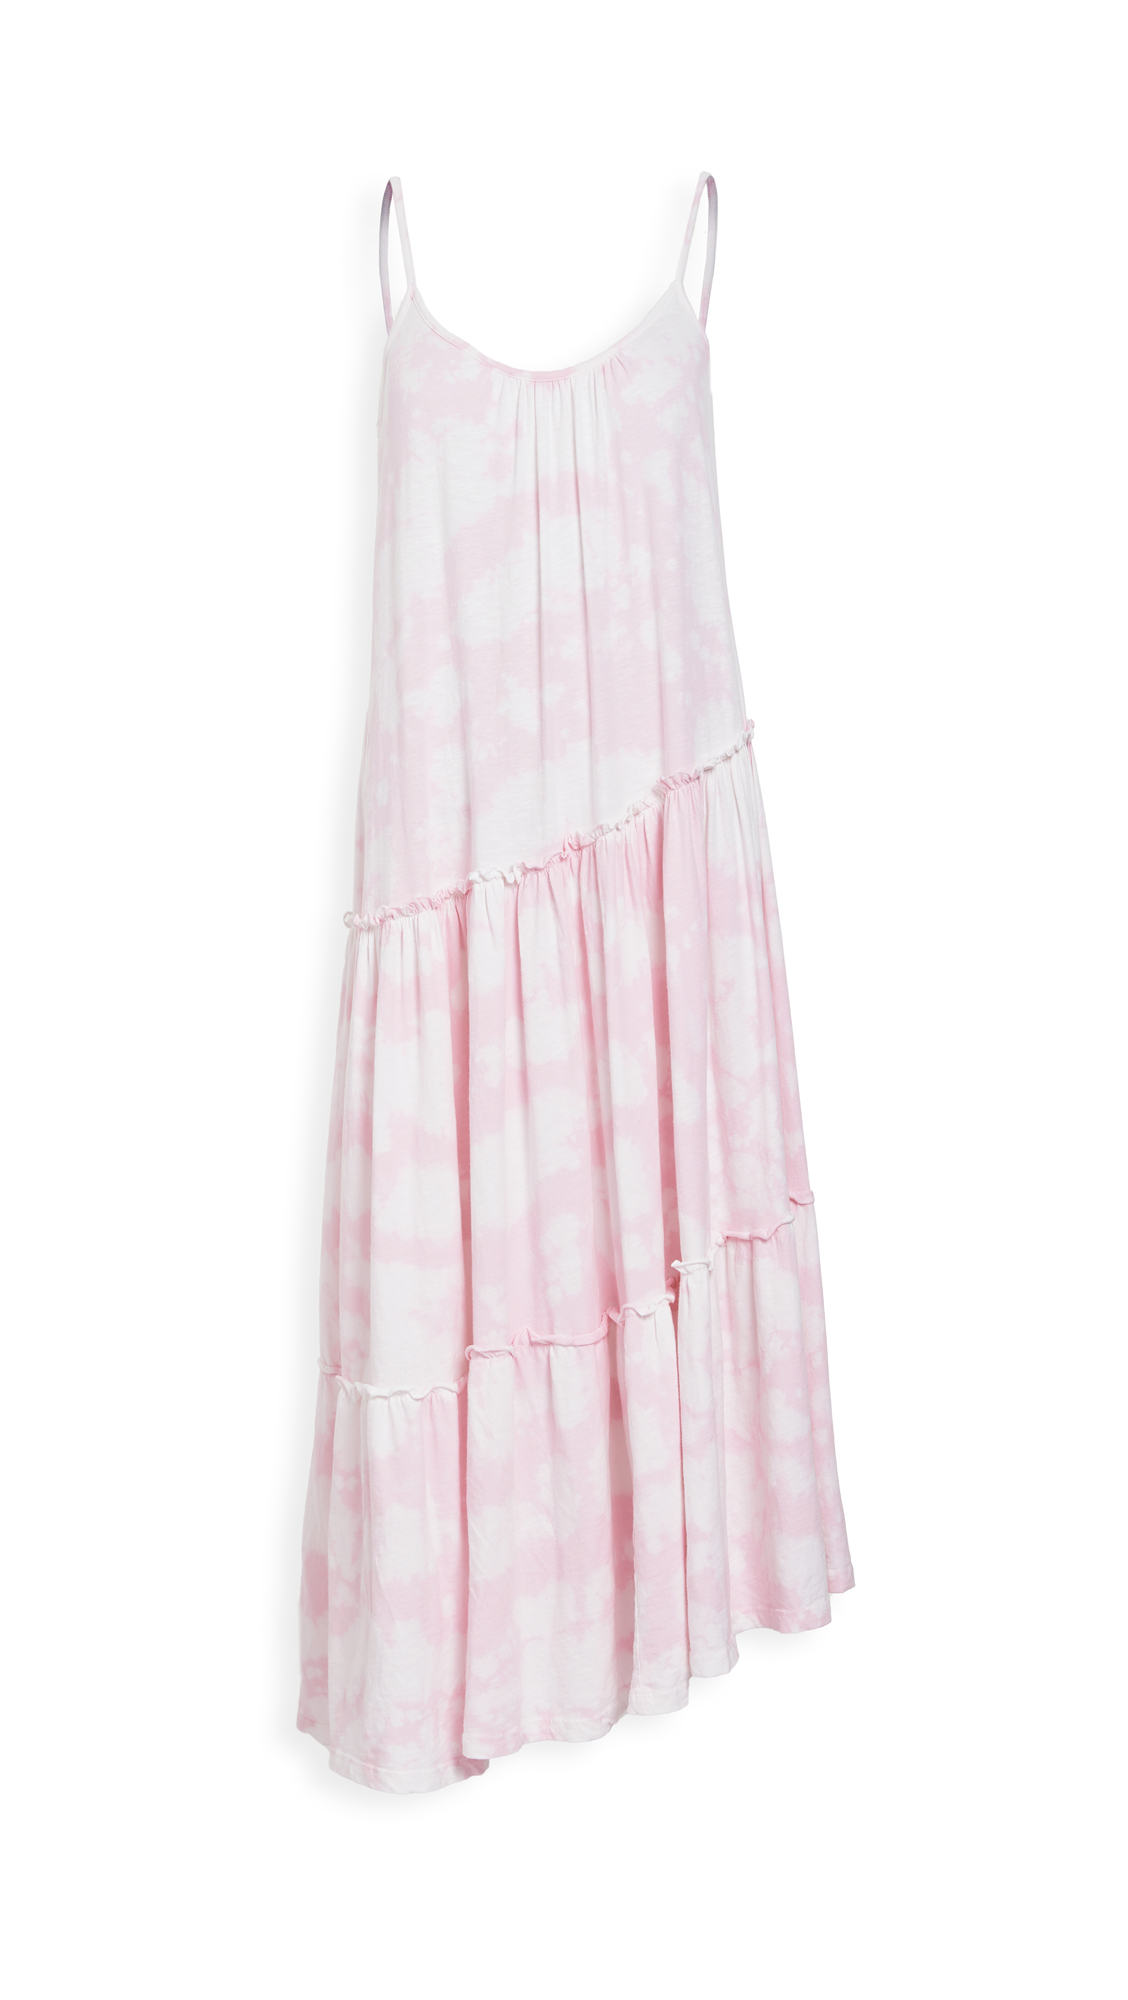 SUNDRY Asymmetrical Tiered Dress